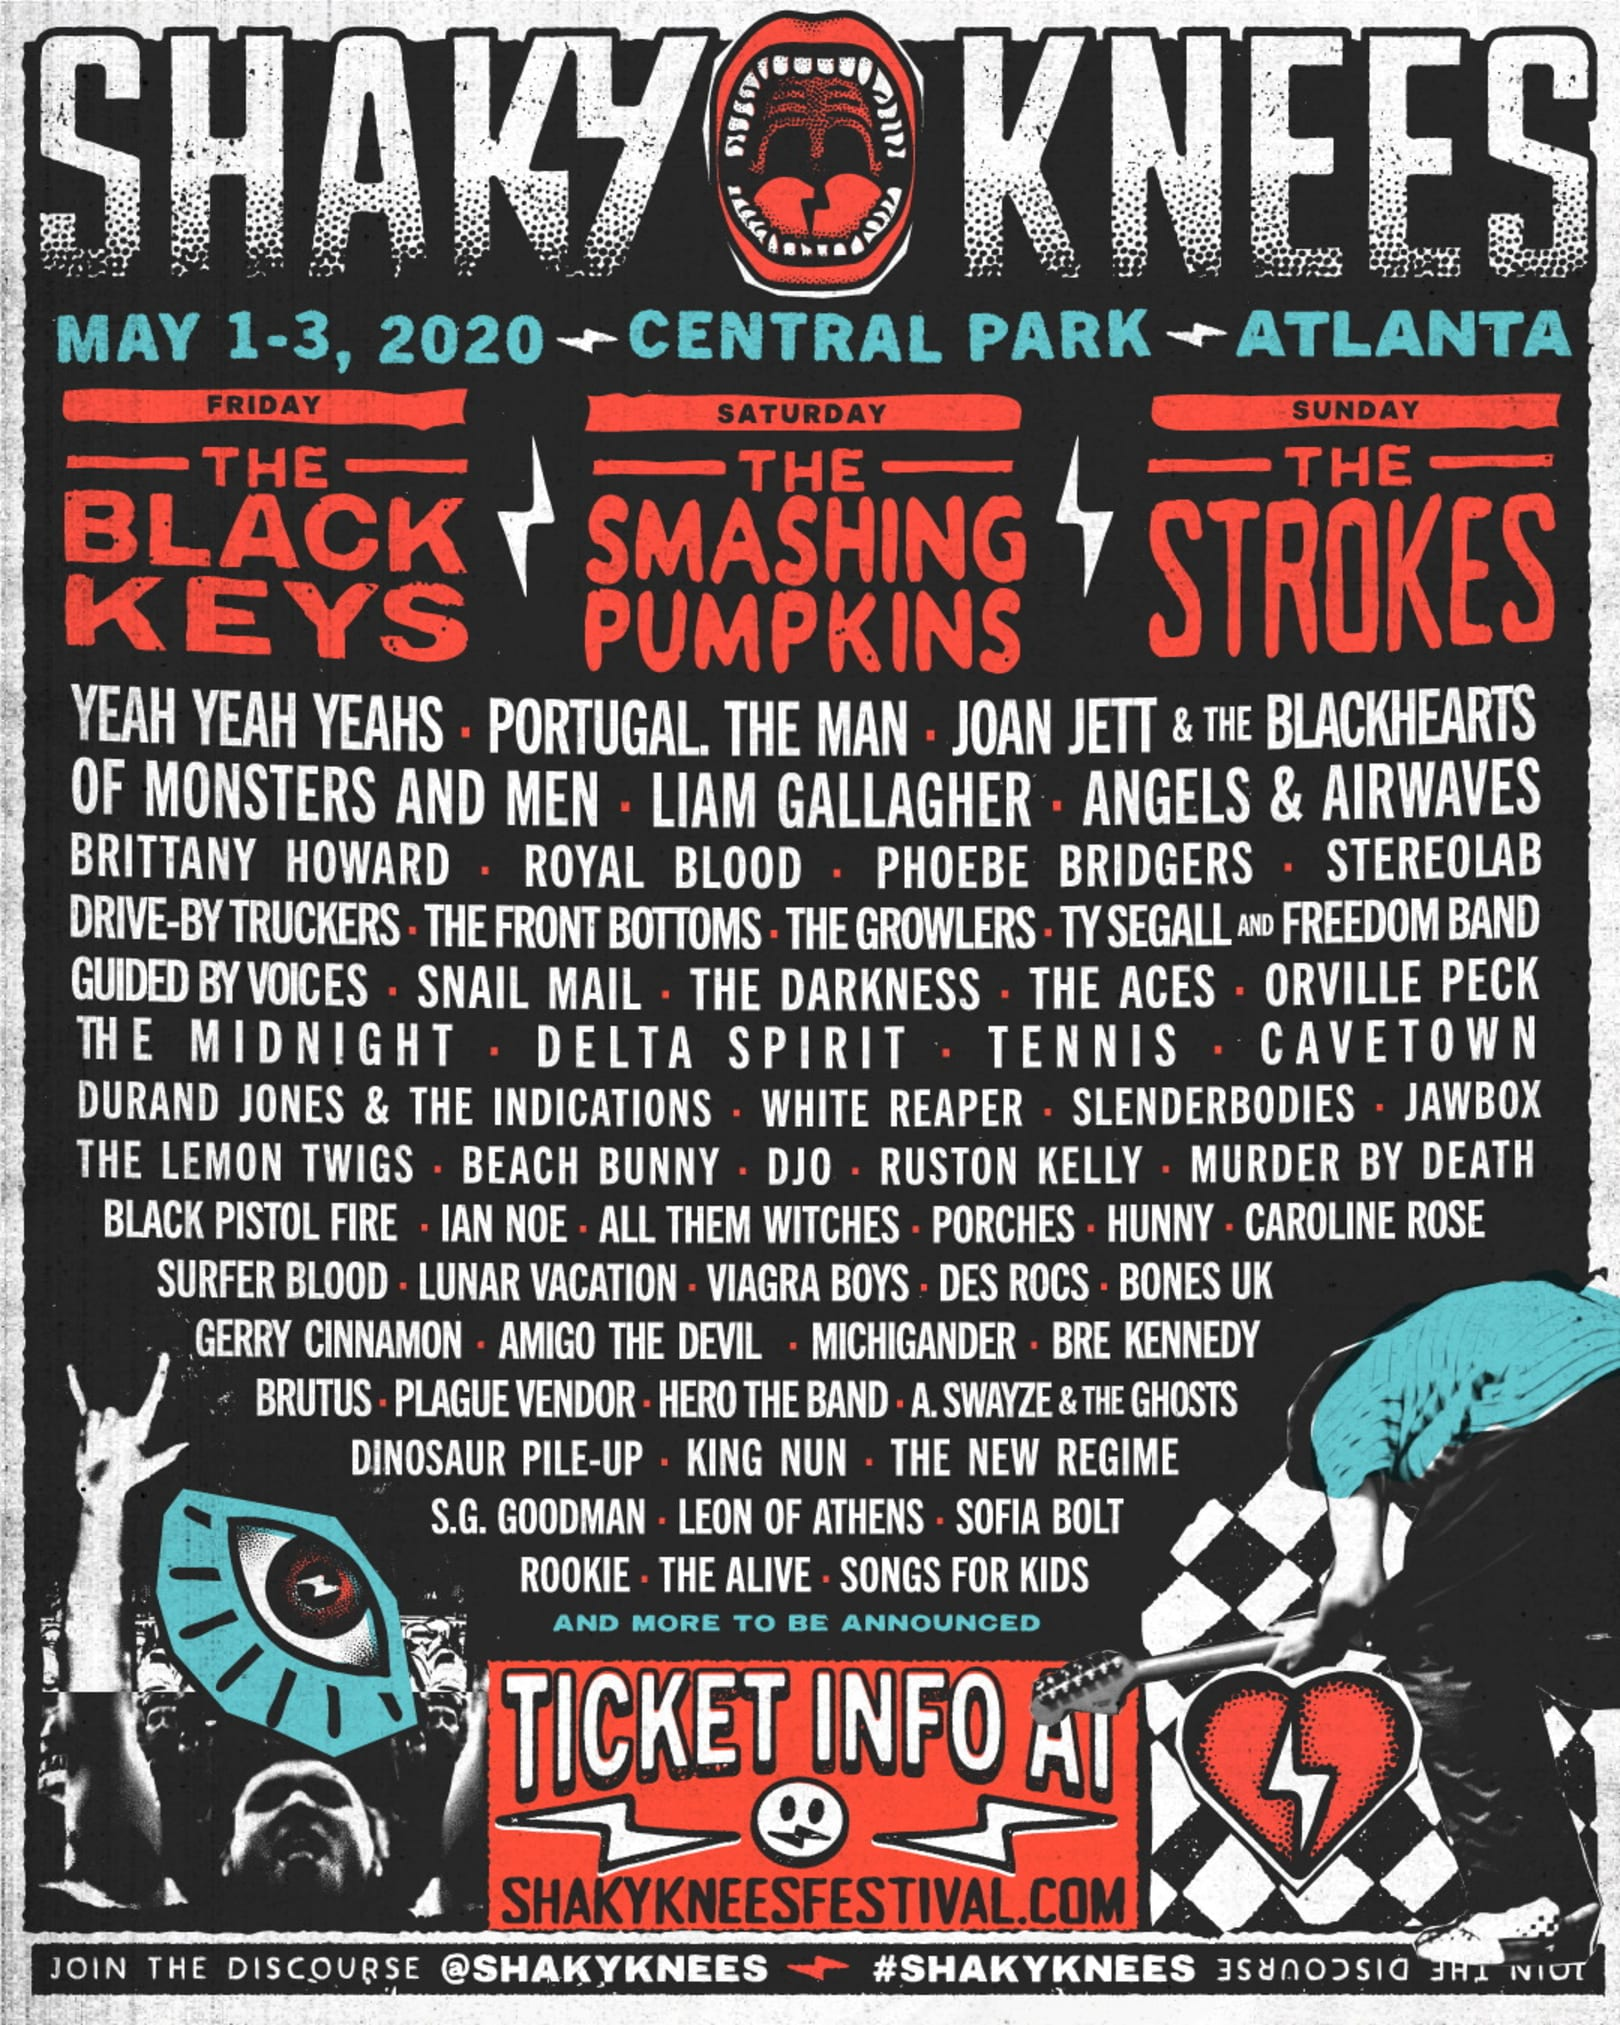 Shaky Knees festival 2020